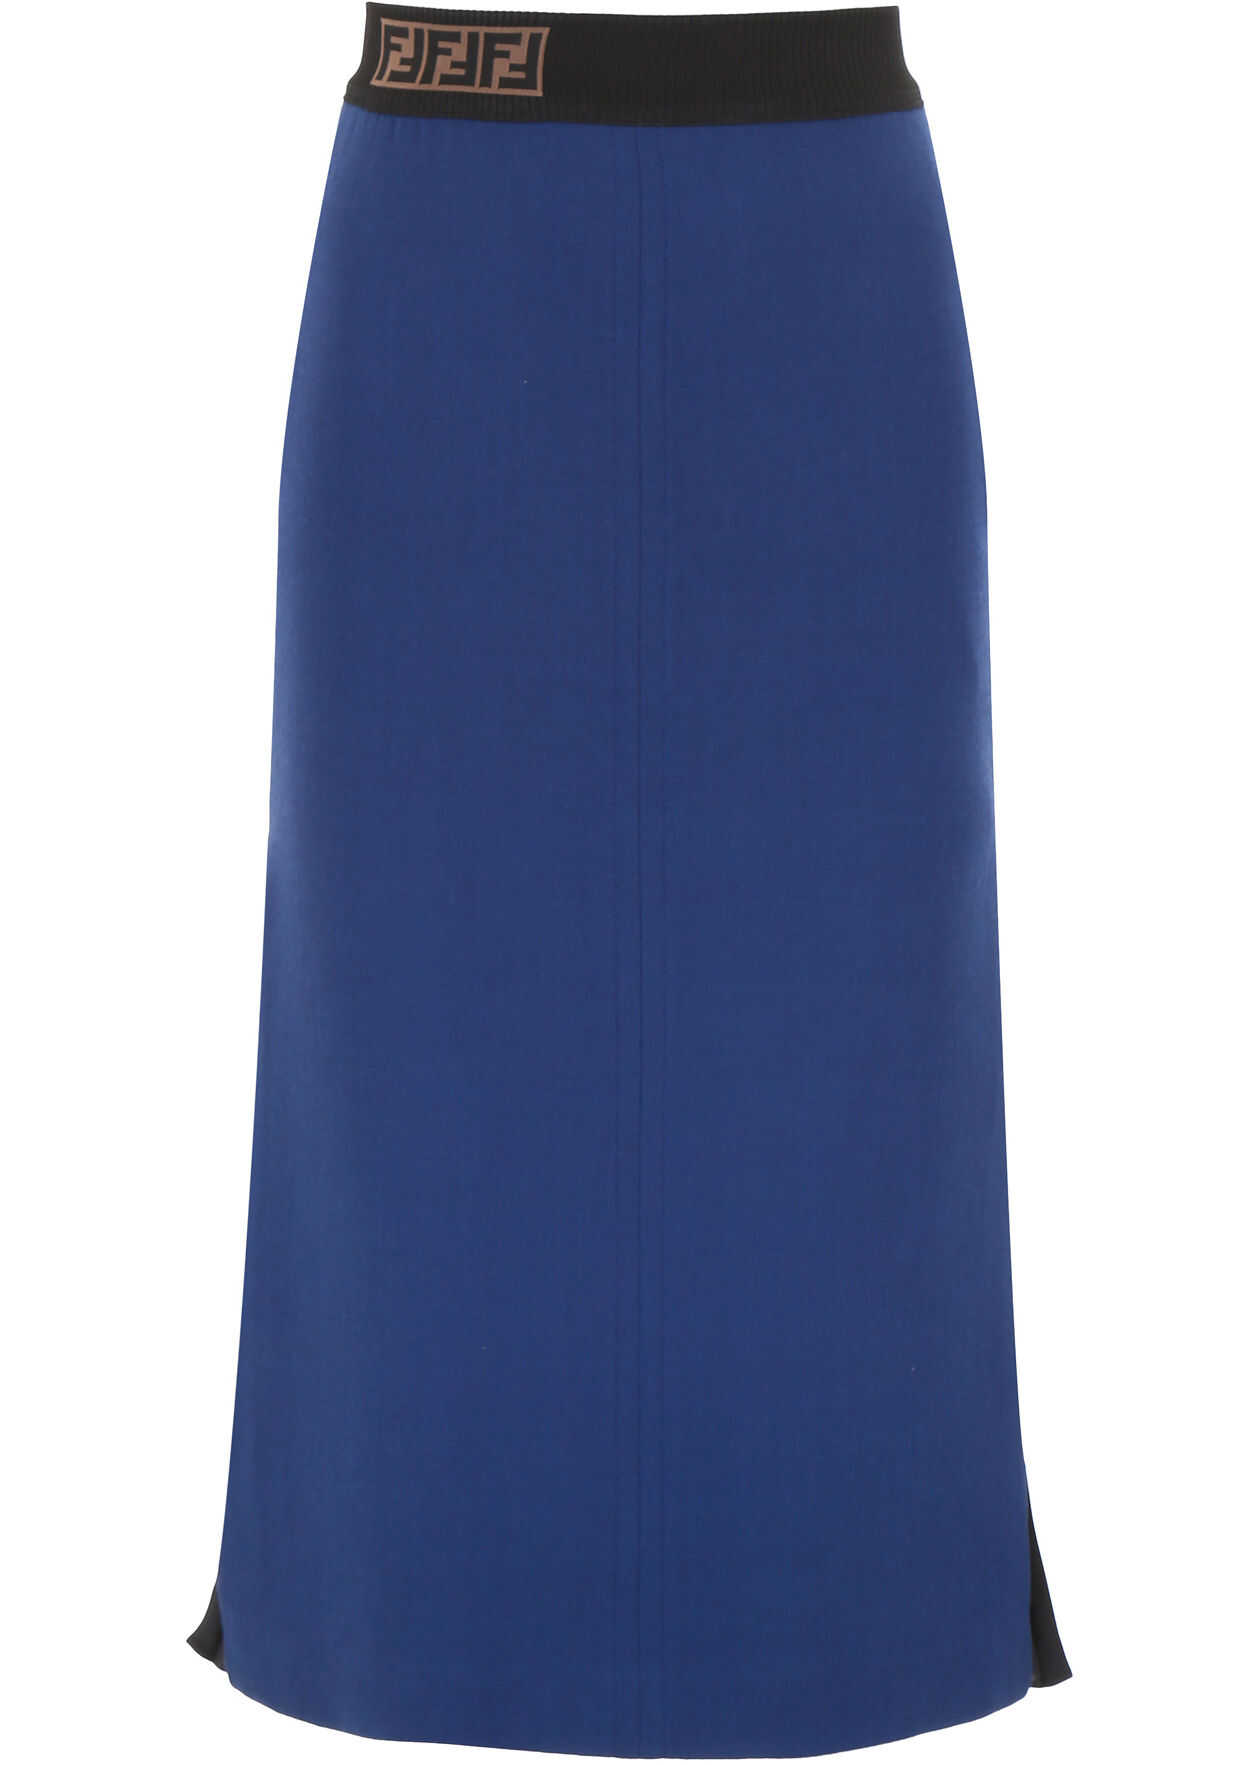 Fendi Pencil Skirt With Pleated Side MARTINIQUE